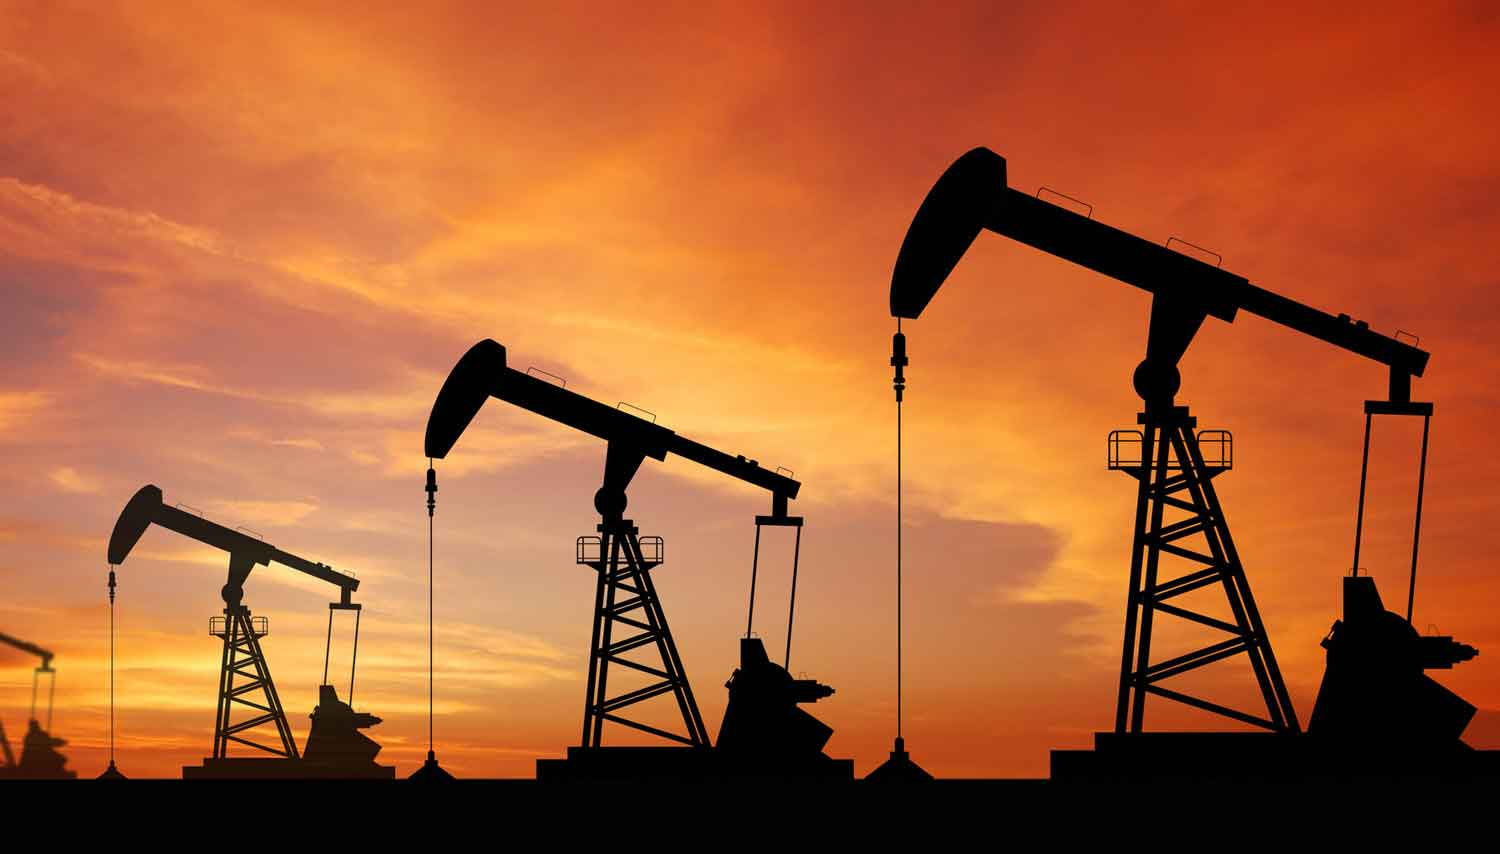 Nigeria's downstream oil sector stagnates, loses billions over uncertainty, subsidy